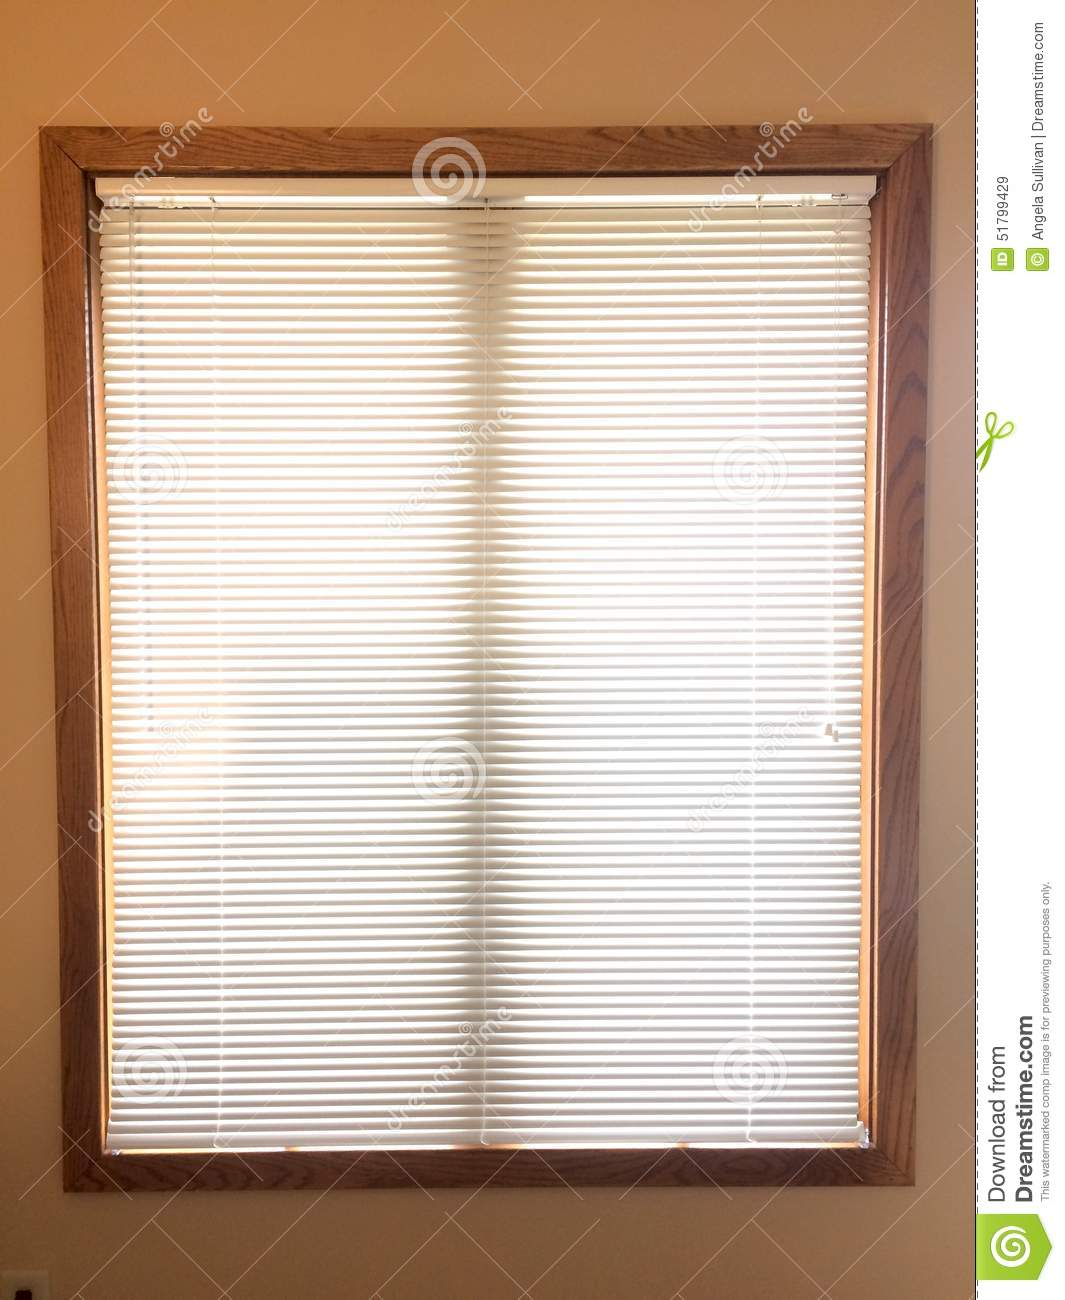 mini blinds on wood window frame